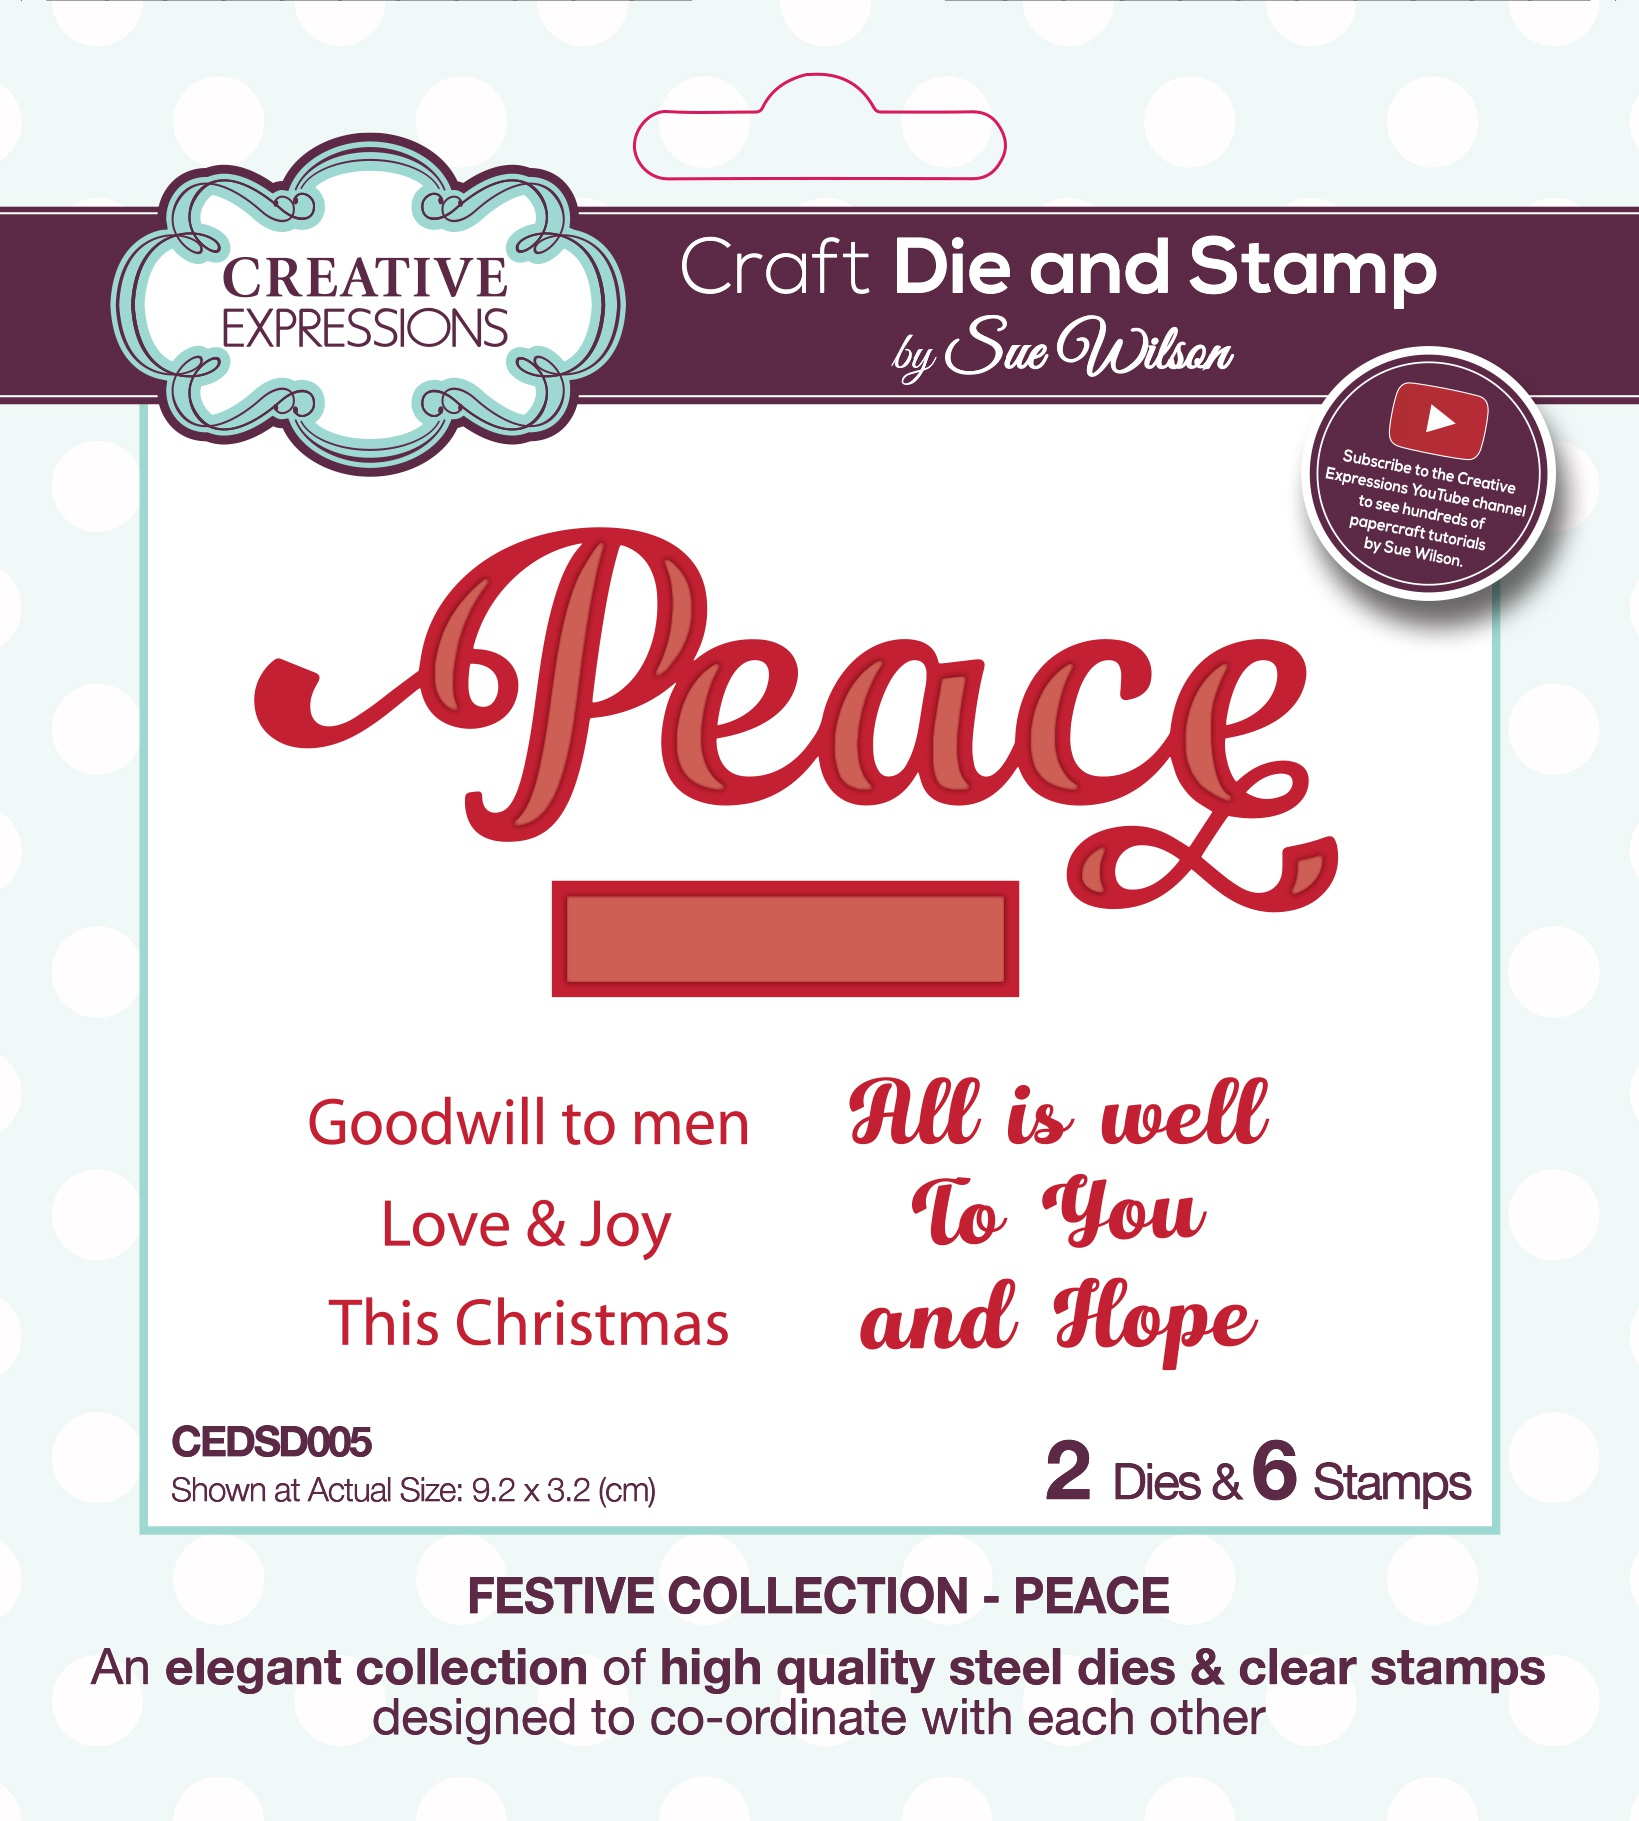 Creative Expressions Craft Die And Stamp Set By Sue Wilson-Peace